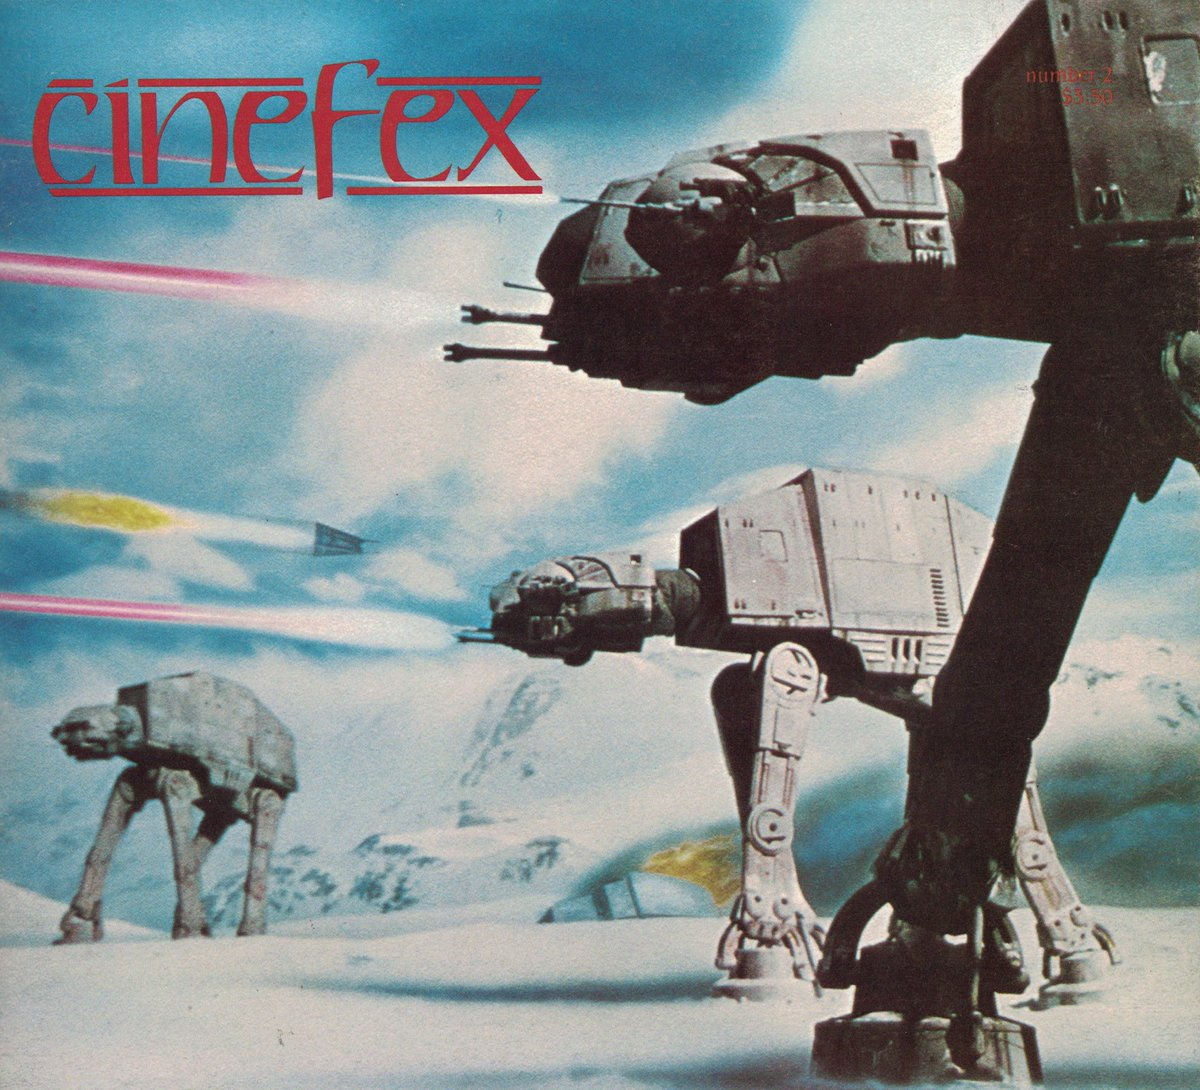 Cinefex magazine Number 2, August 1980. #80s #SciFi #movies #starwarspic.twitter.com/kEiTjyx9Og